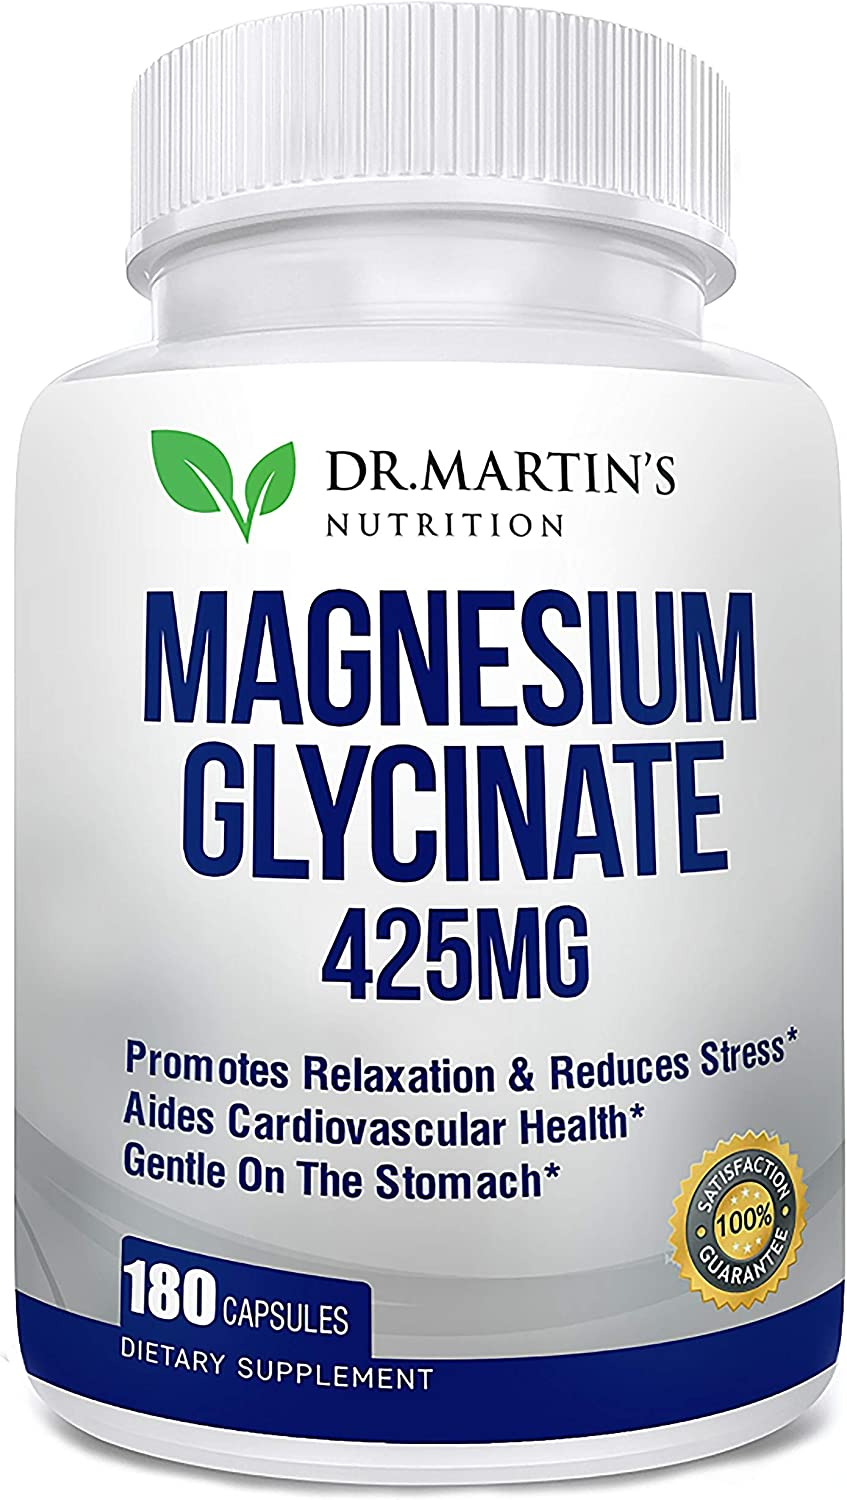 Premium Magnesium Glycinate 425mg - 180 High Potency Vegan Capsules - Helps with Stress Relief, Sleep, Migraines, Muscle Cramps & Healthy Heart | Non-GMO, Gluten Free